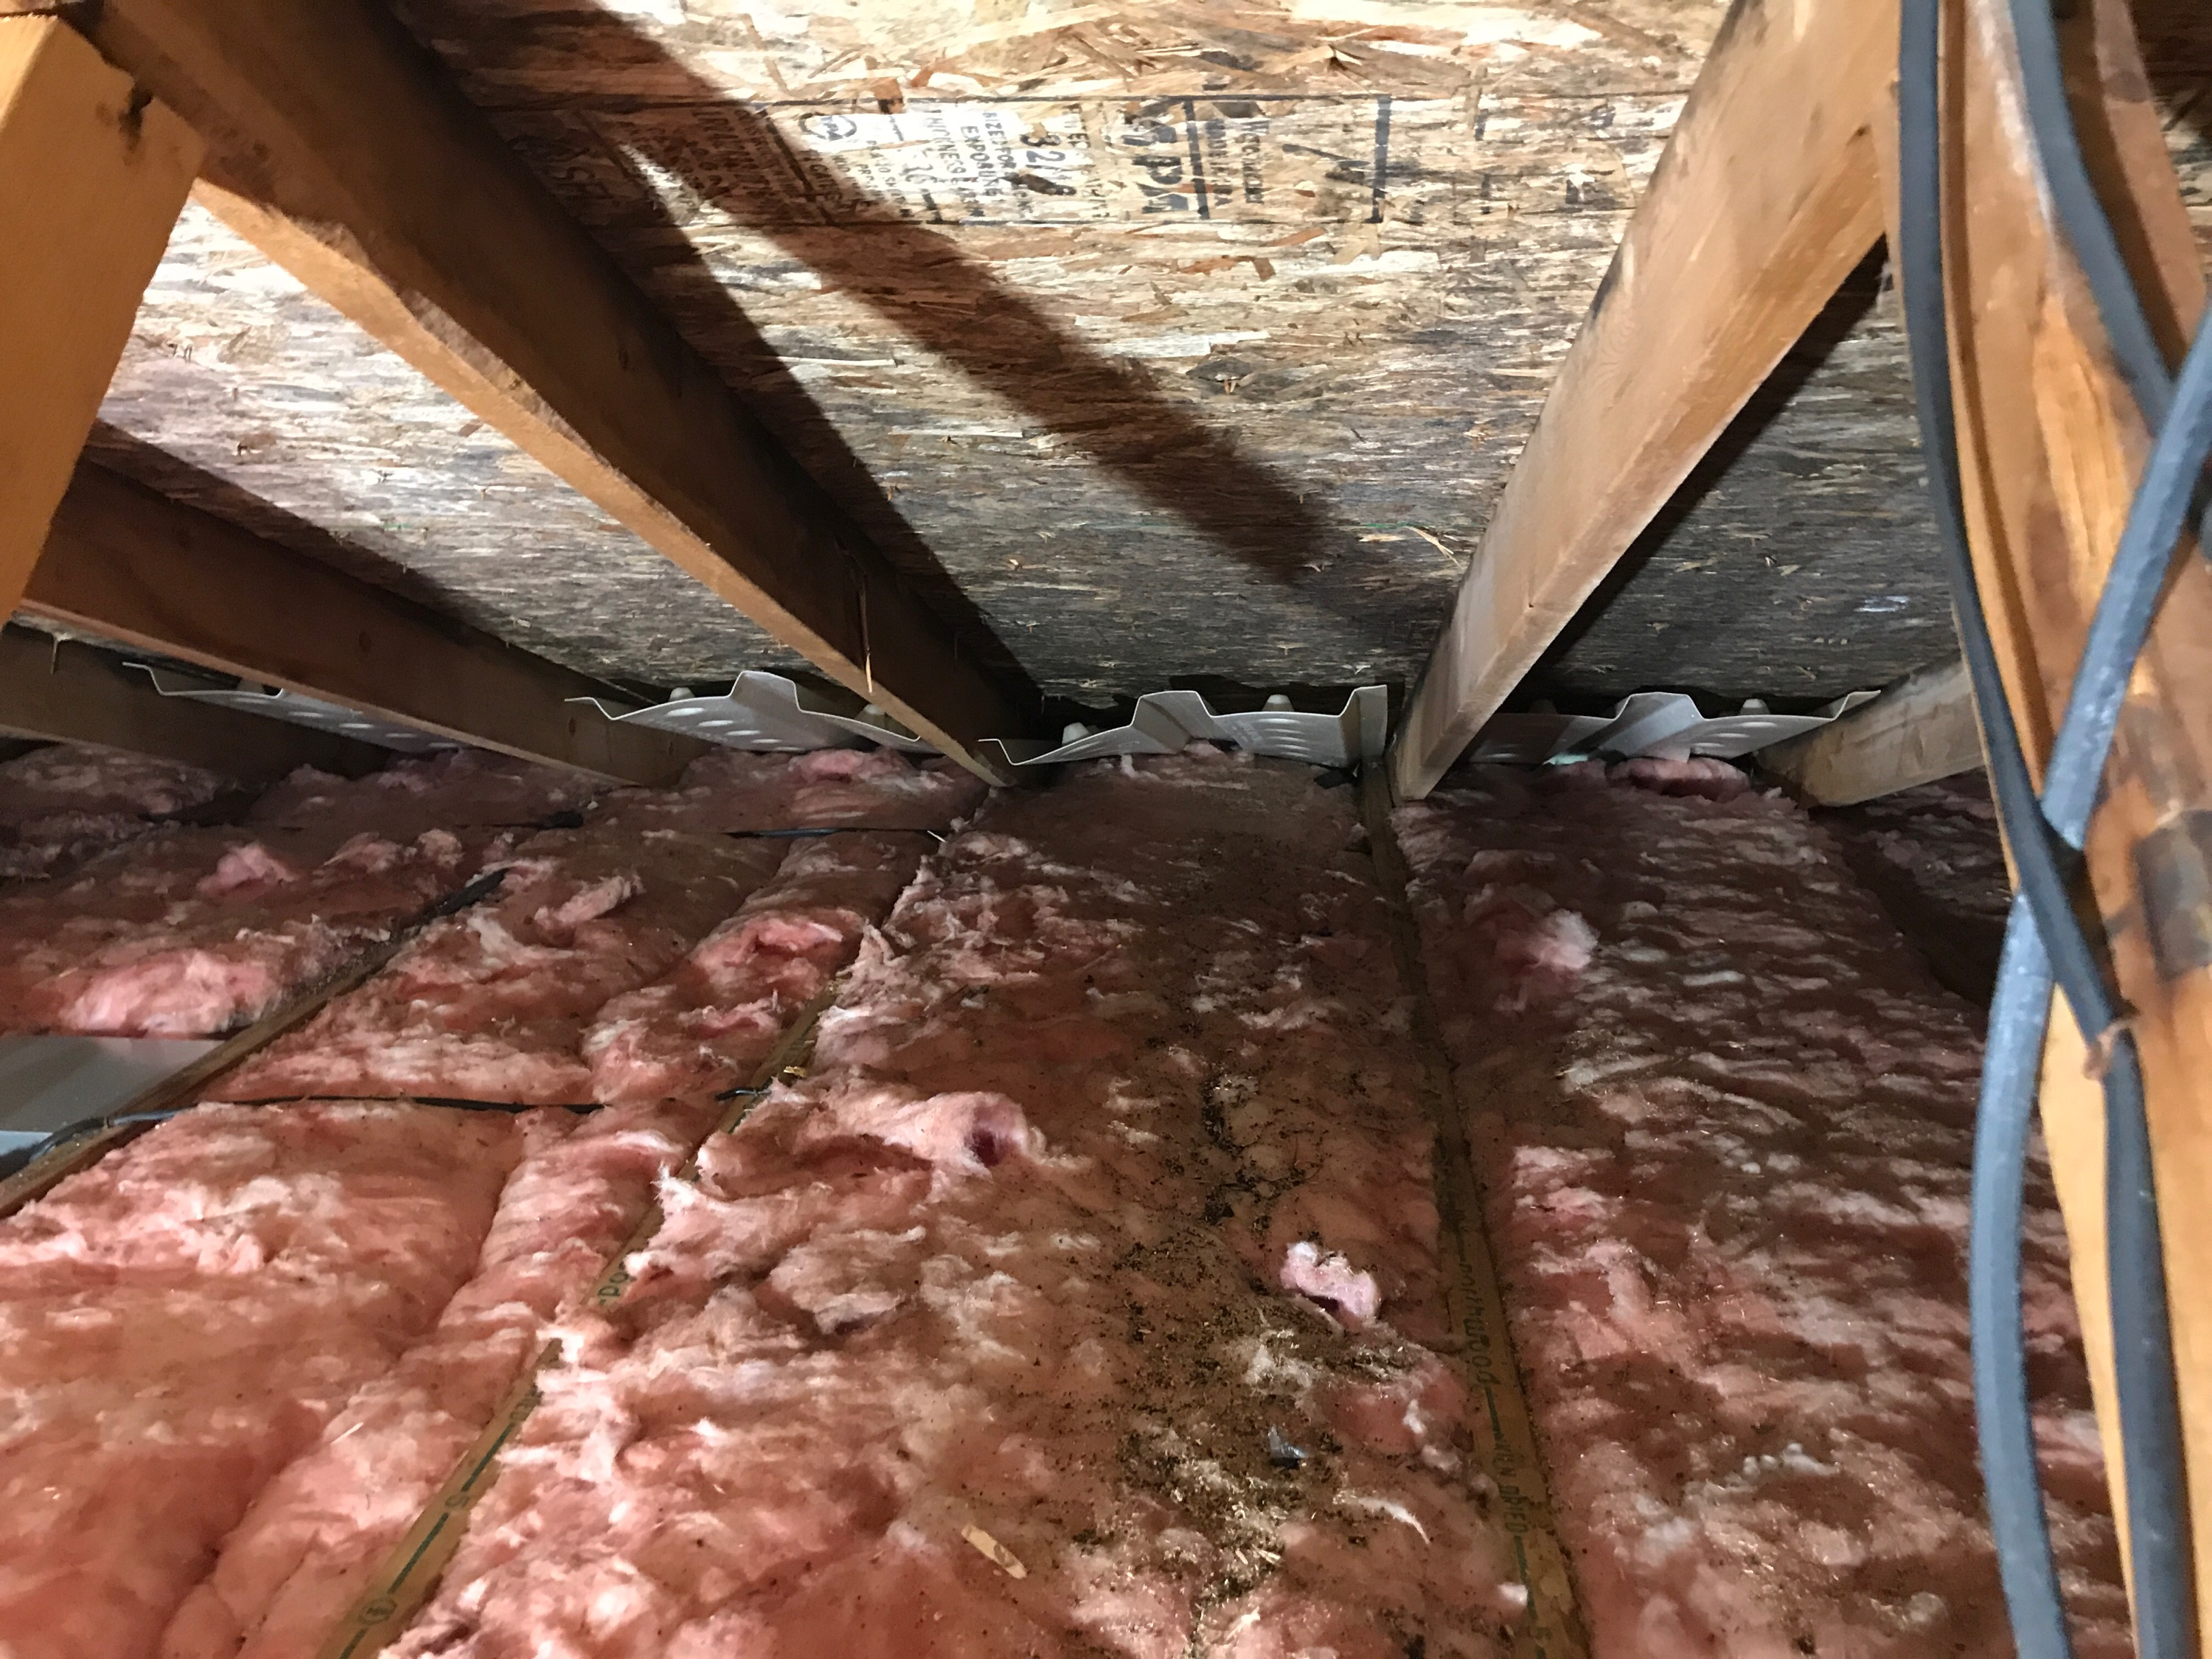 Mold growth in an attic